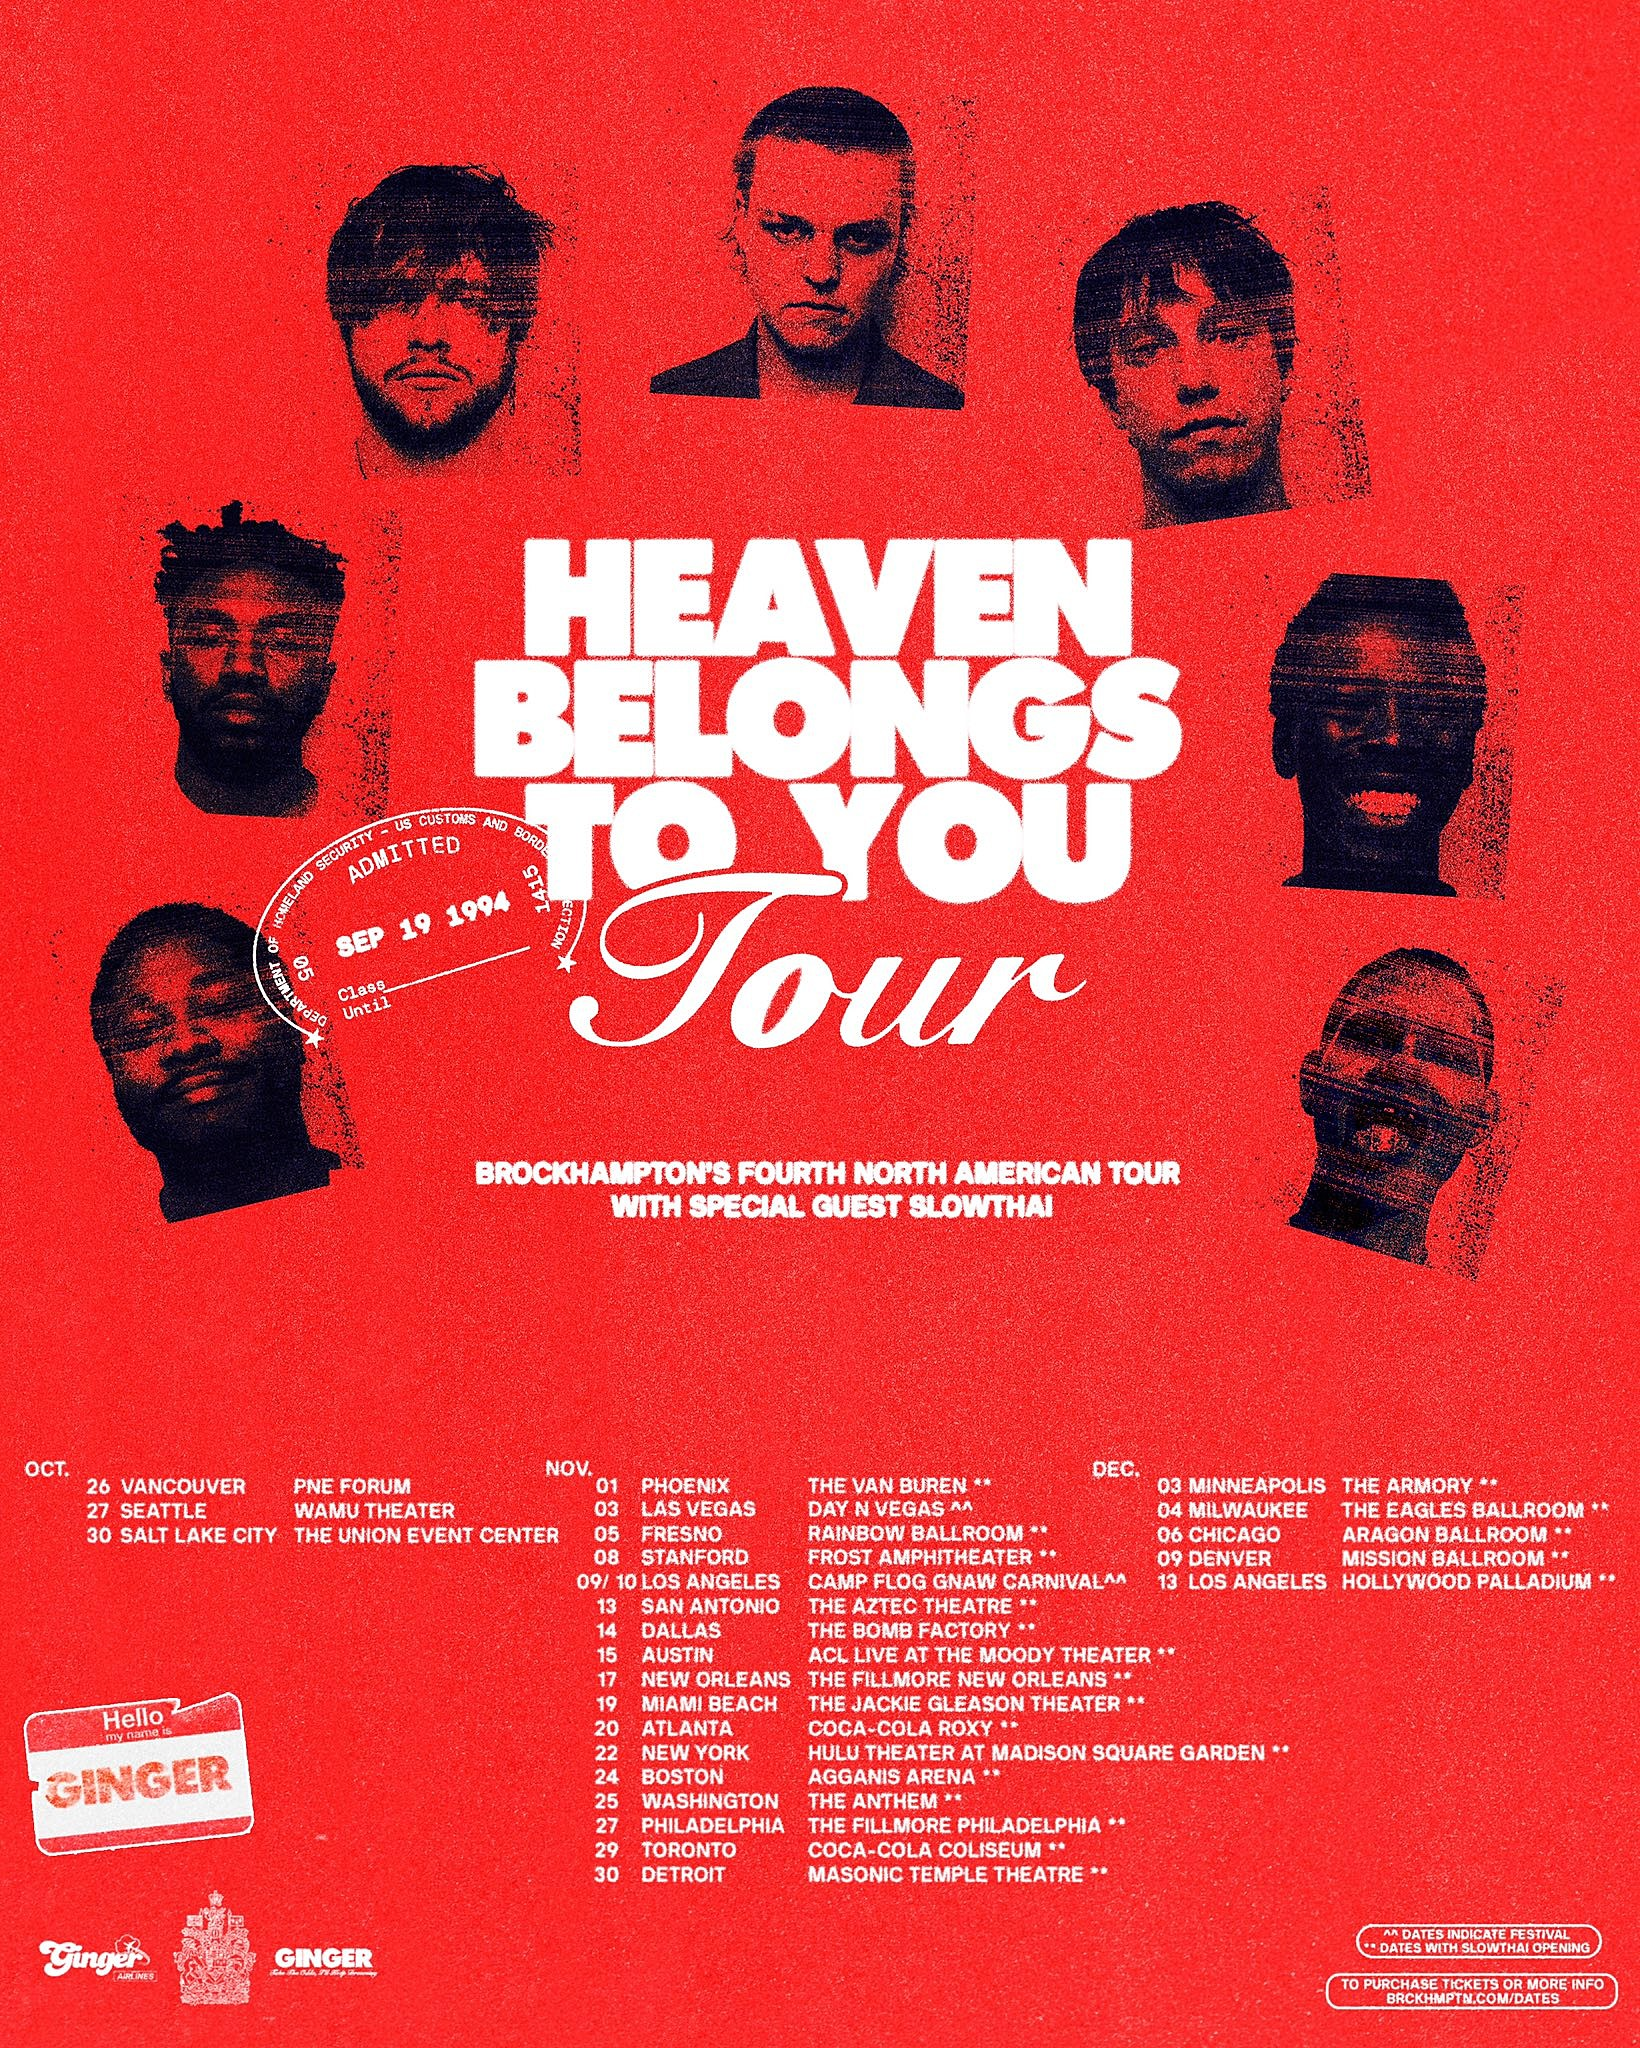 Brockhampton - Heaven Belongs to You tour